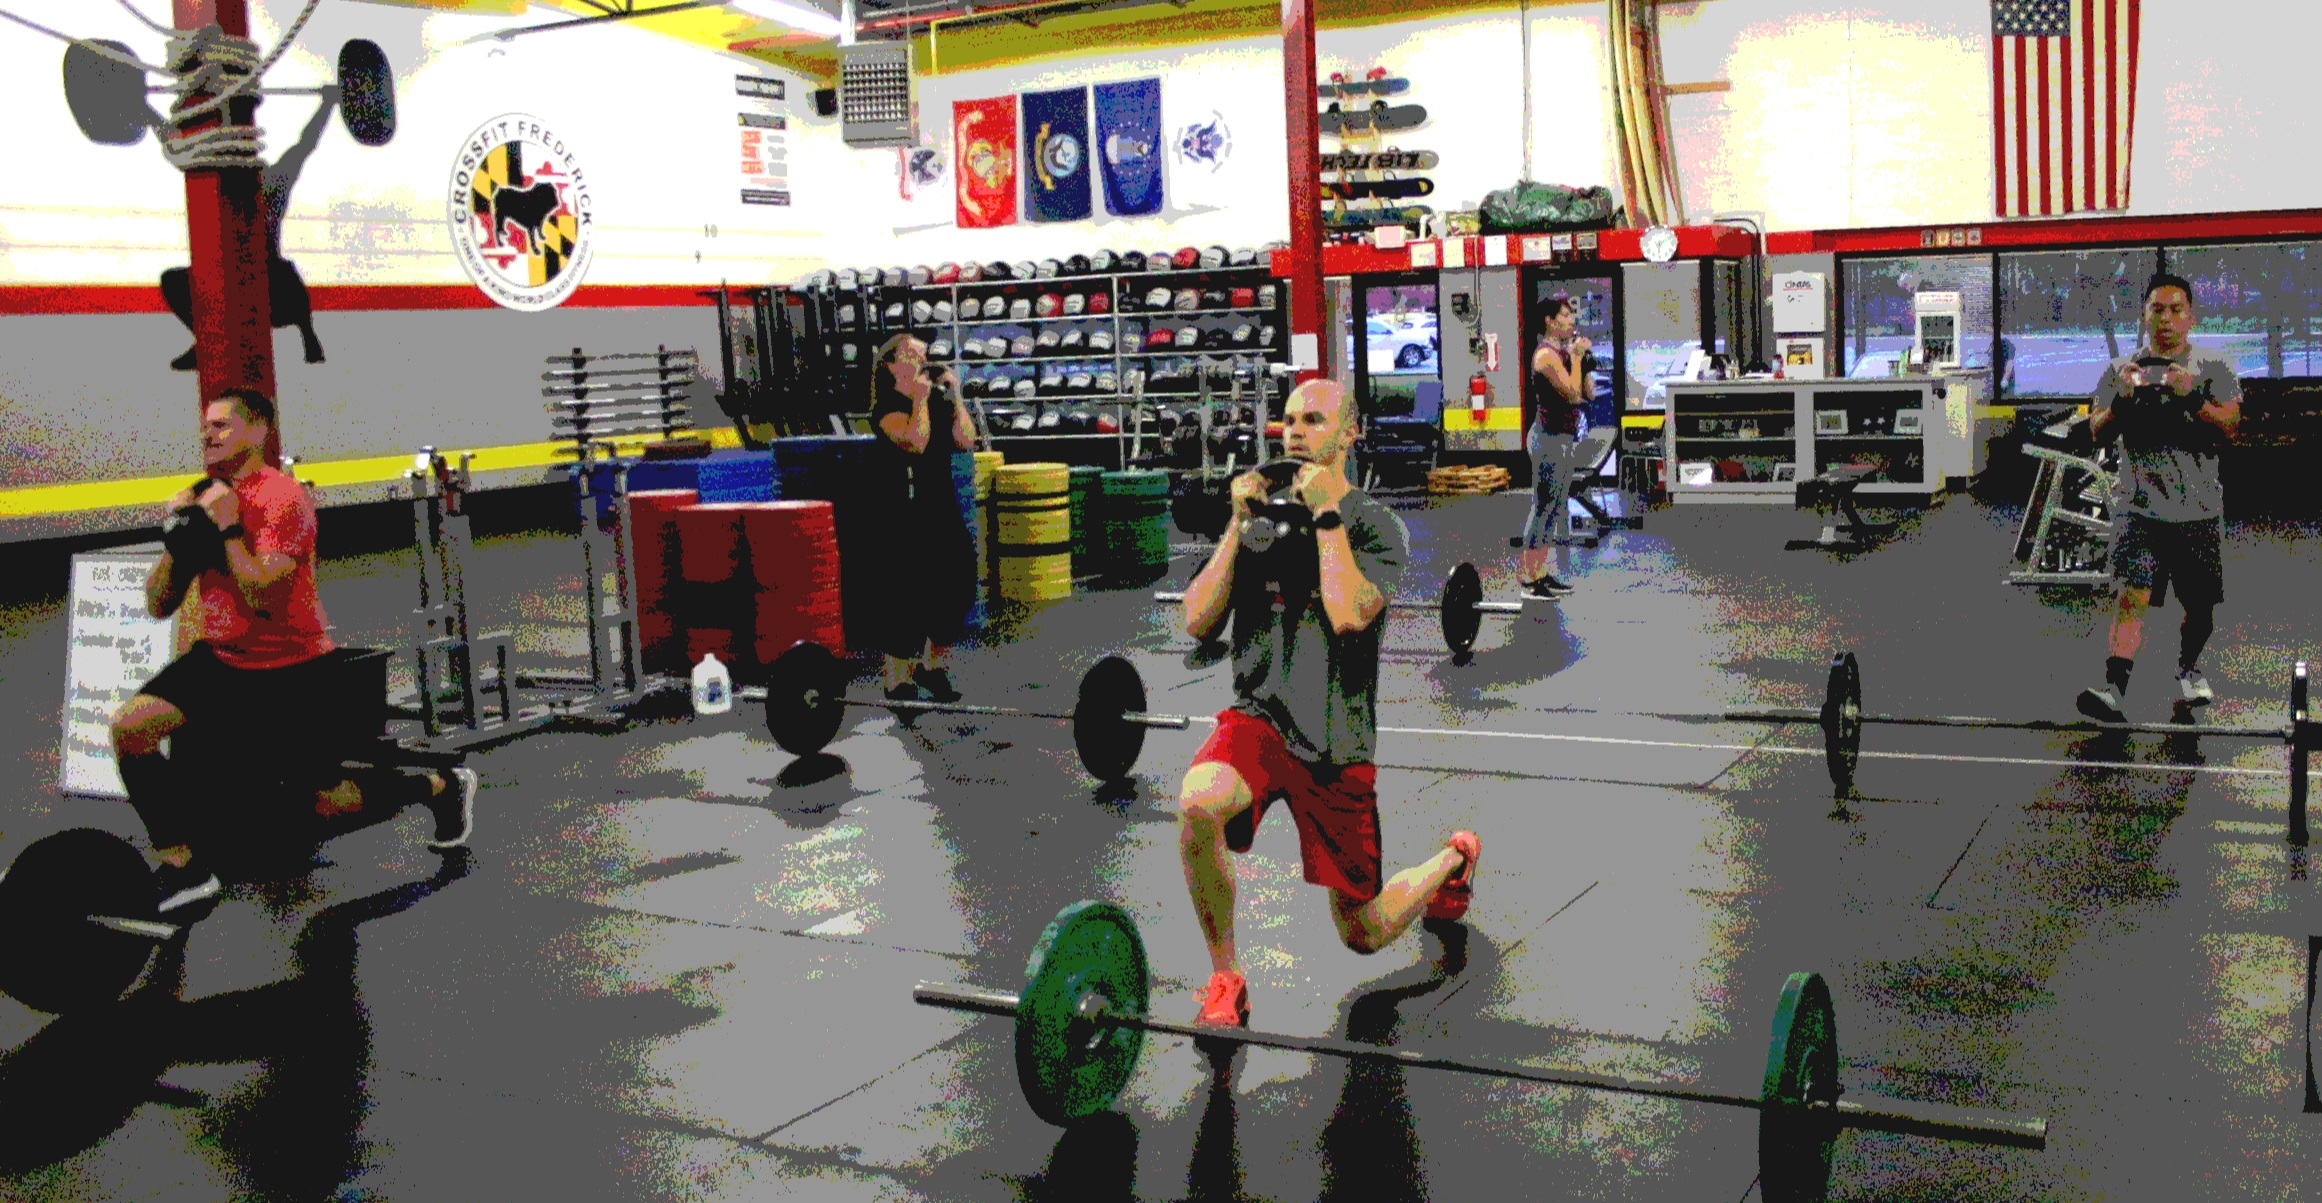 Left to right, Rob, Megan, Isaac, Karla, and Loc doing front rack stationary lunges with a Kettlebell.